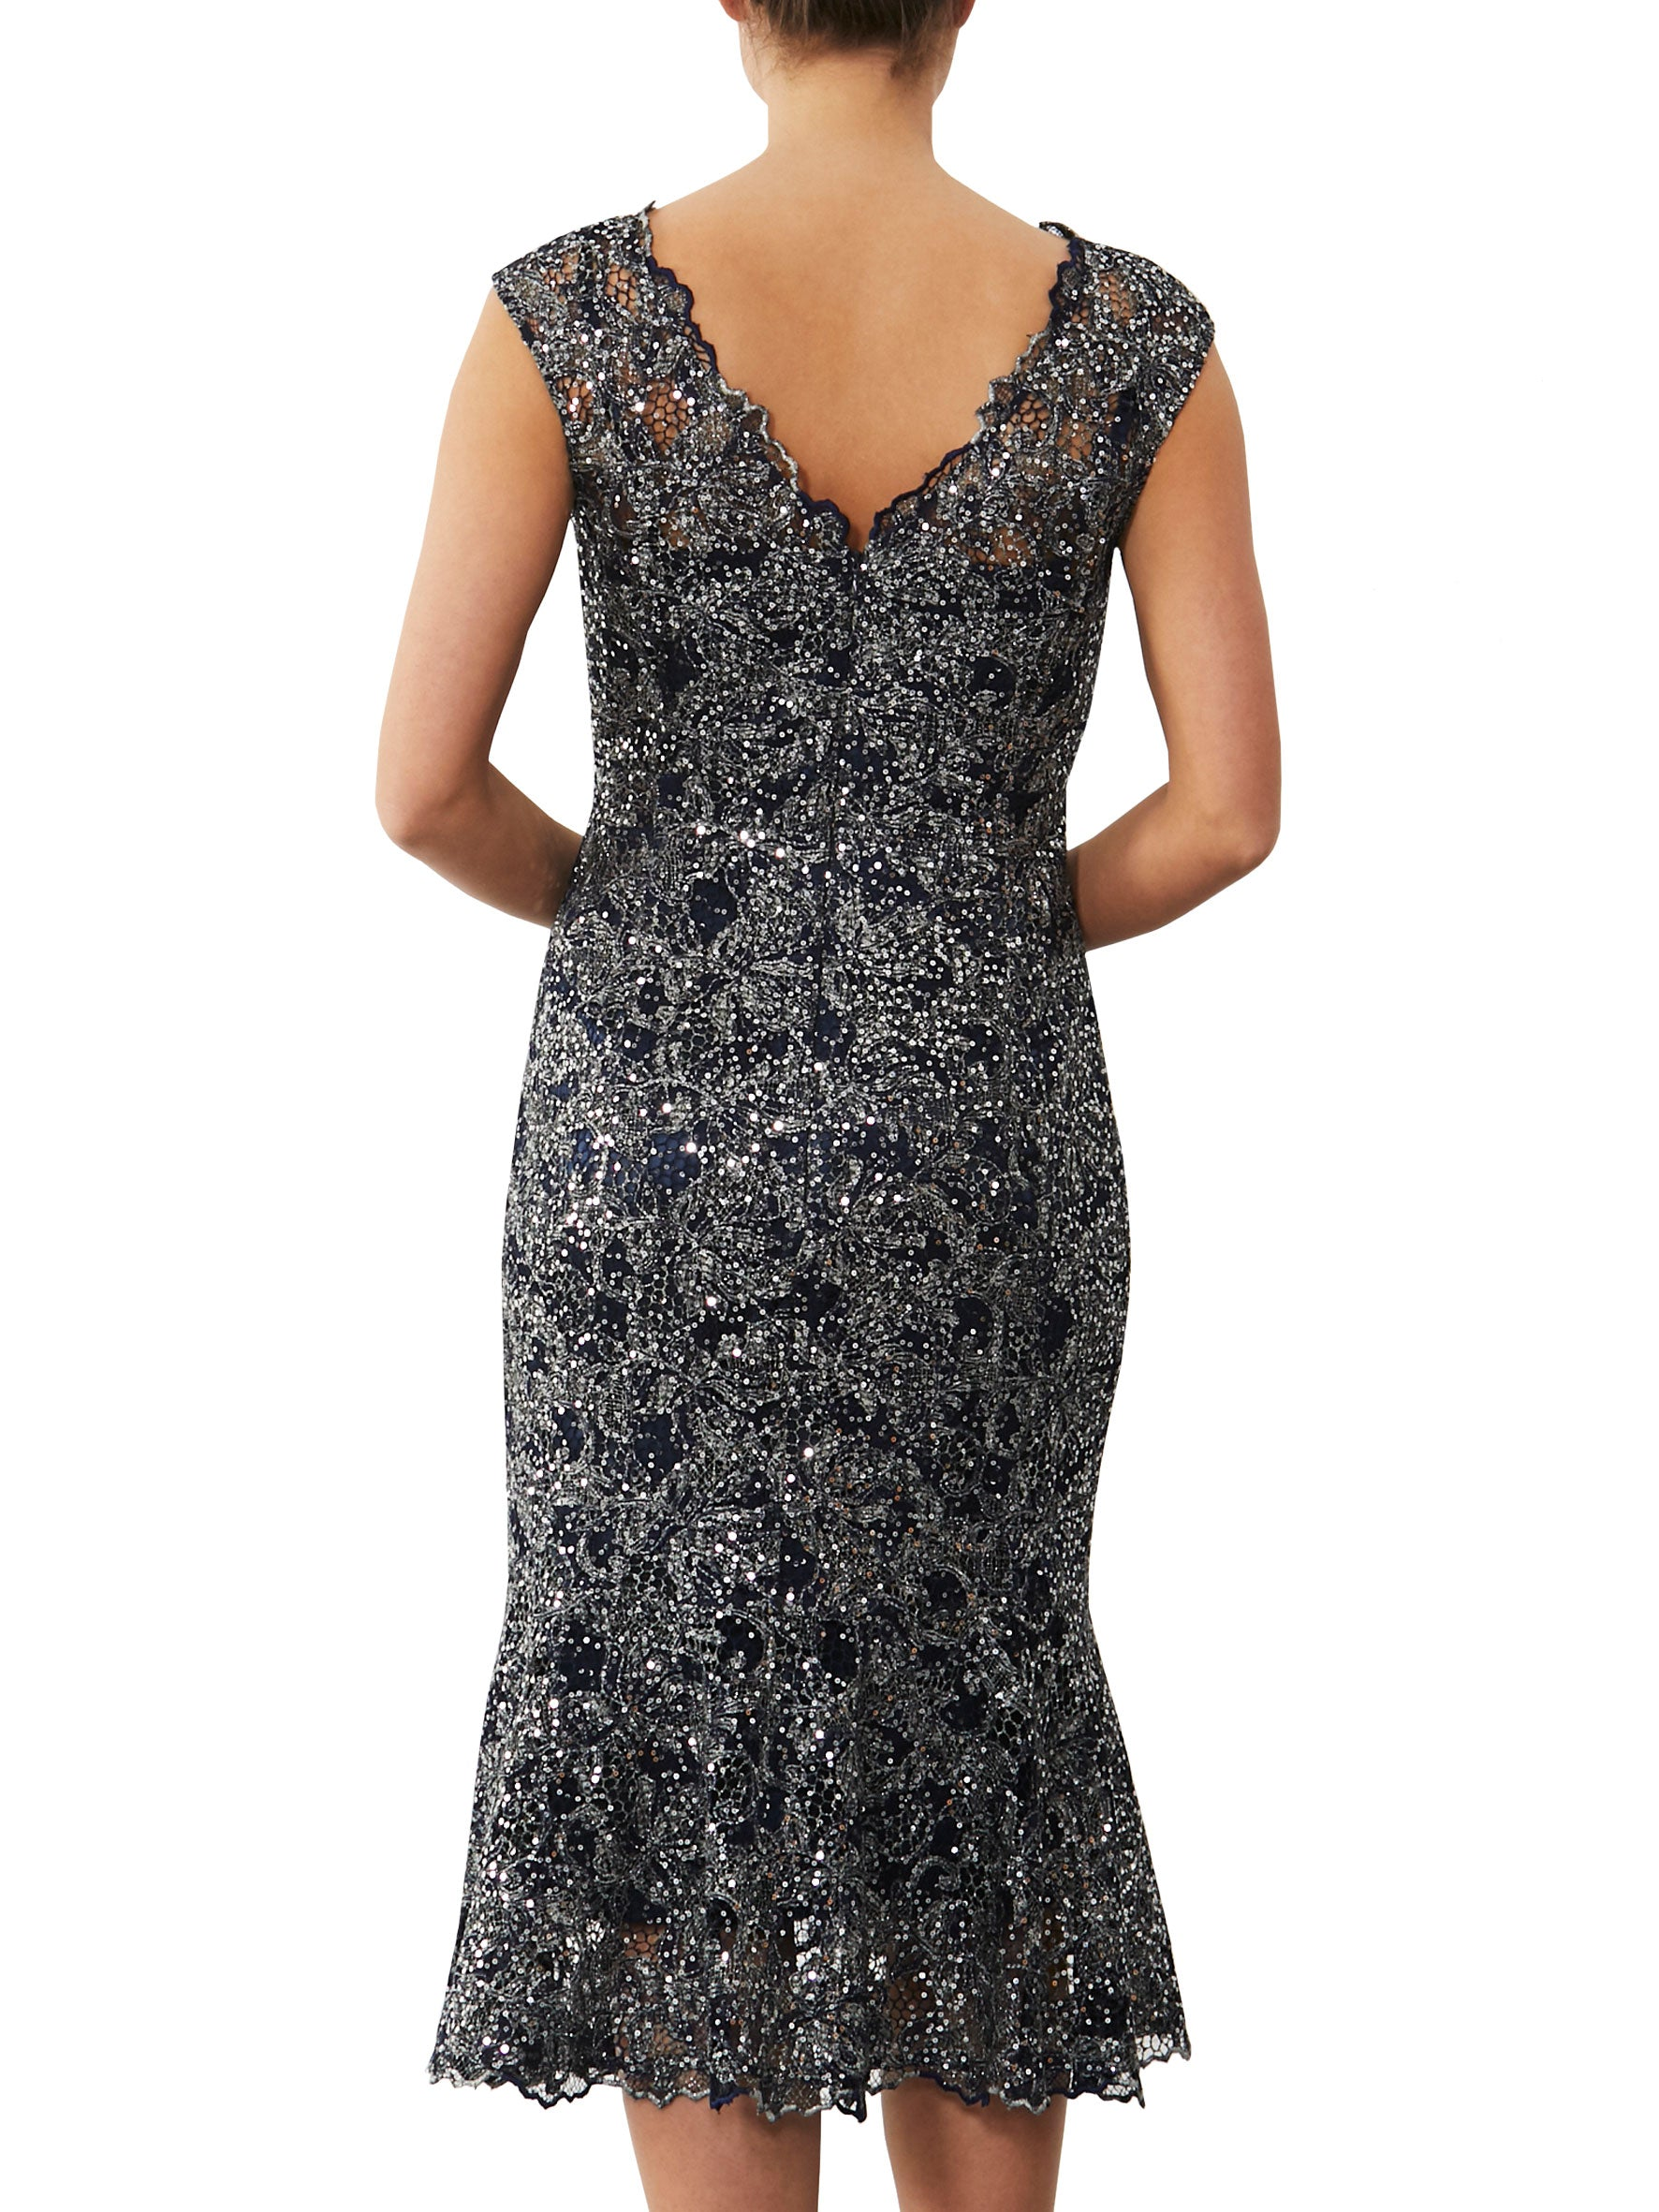 Sequin and Lace Dress,anthea crawford dresses,anthea crawford dresses,